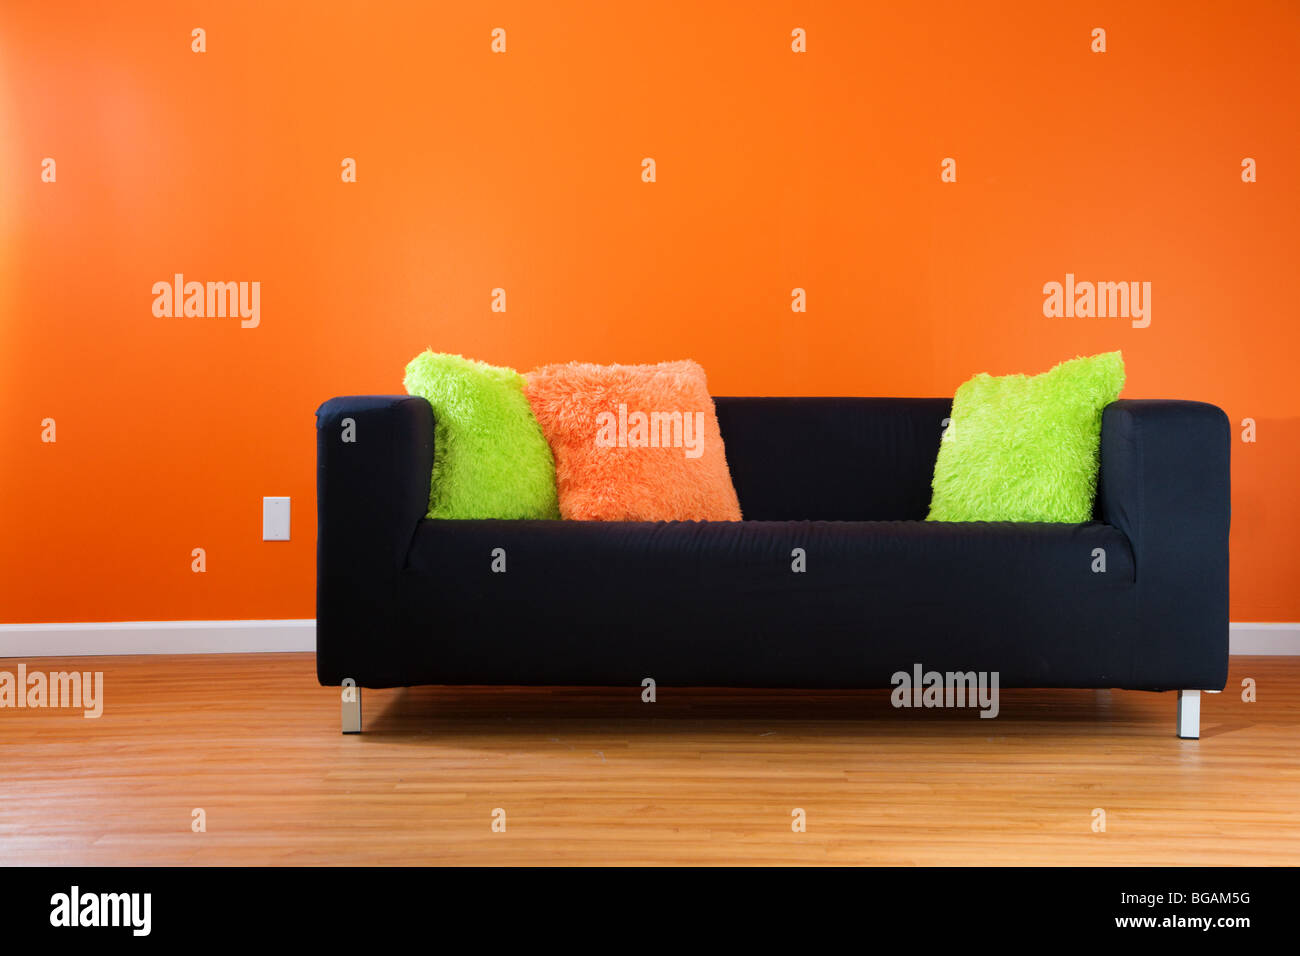 Contemporary black couch against bright orange wall in a modern living room - Stock Image